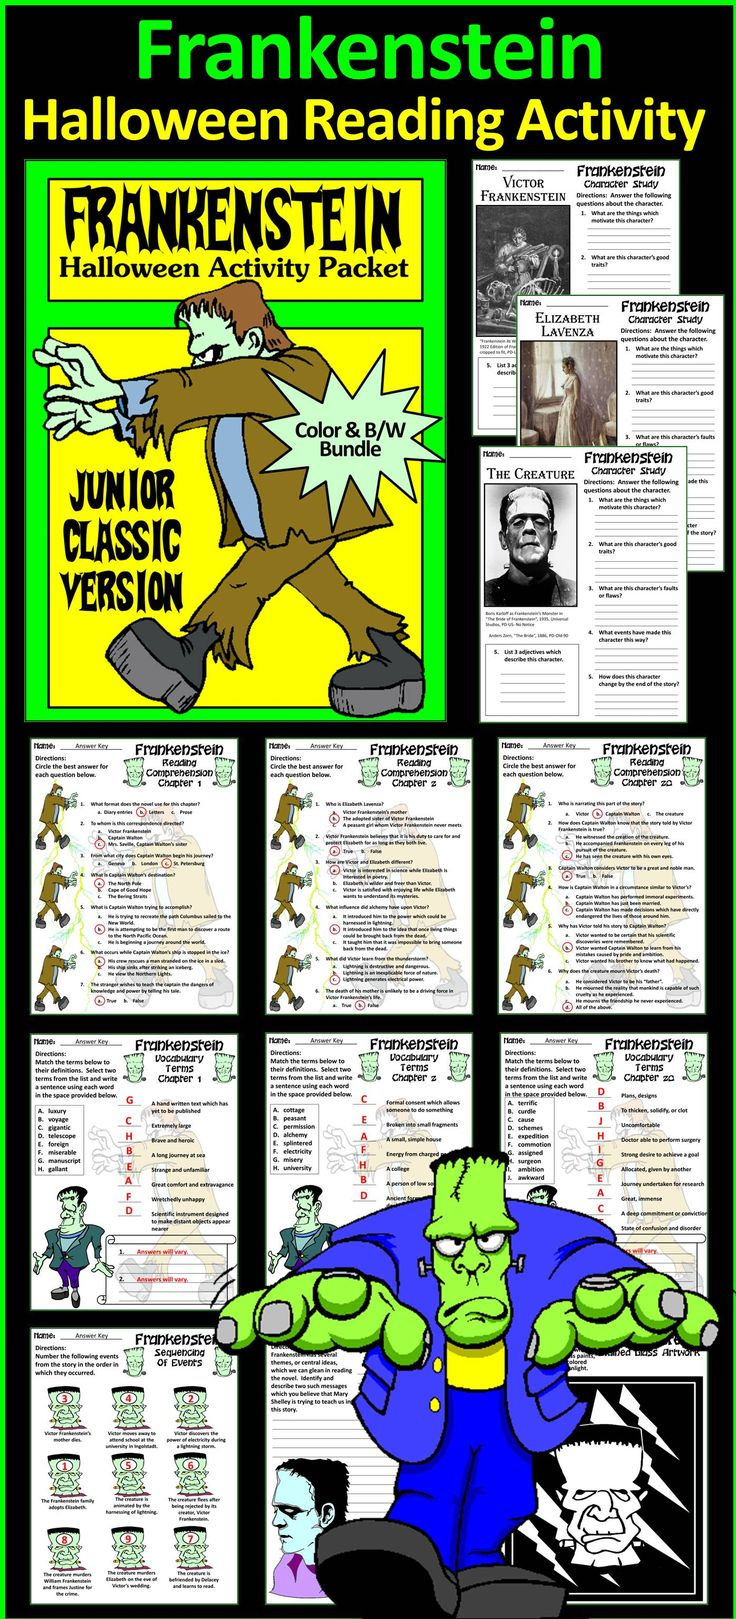 Frankenstein Junior Classic Novel Halloween Activity Packet Bundle : This Halloween language arts activity packet complements the Junior Classic Version of Mary Wollstonecraft Shelley's novel adapted by Bethany Snyder. Included are reading comprehension quizzes & vocabulary worksheets, an event sequencing worksheet,  character study worksheets, writing assignments, and a stained glass art project of the Creature.  #Halloween #Frankenstein #Novel #Reading #Activities #Teacherspayteachers